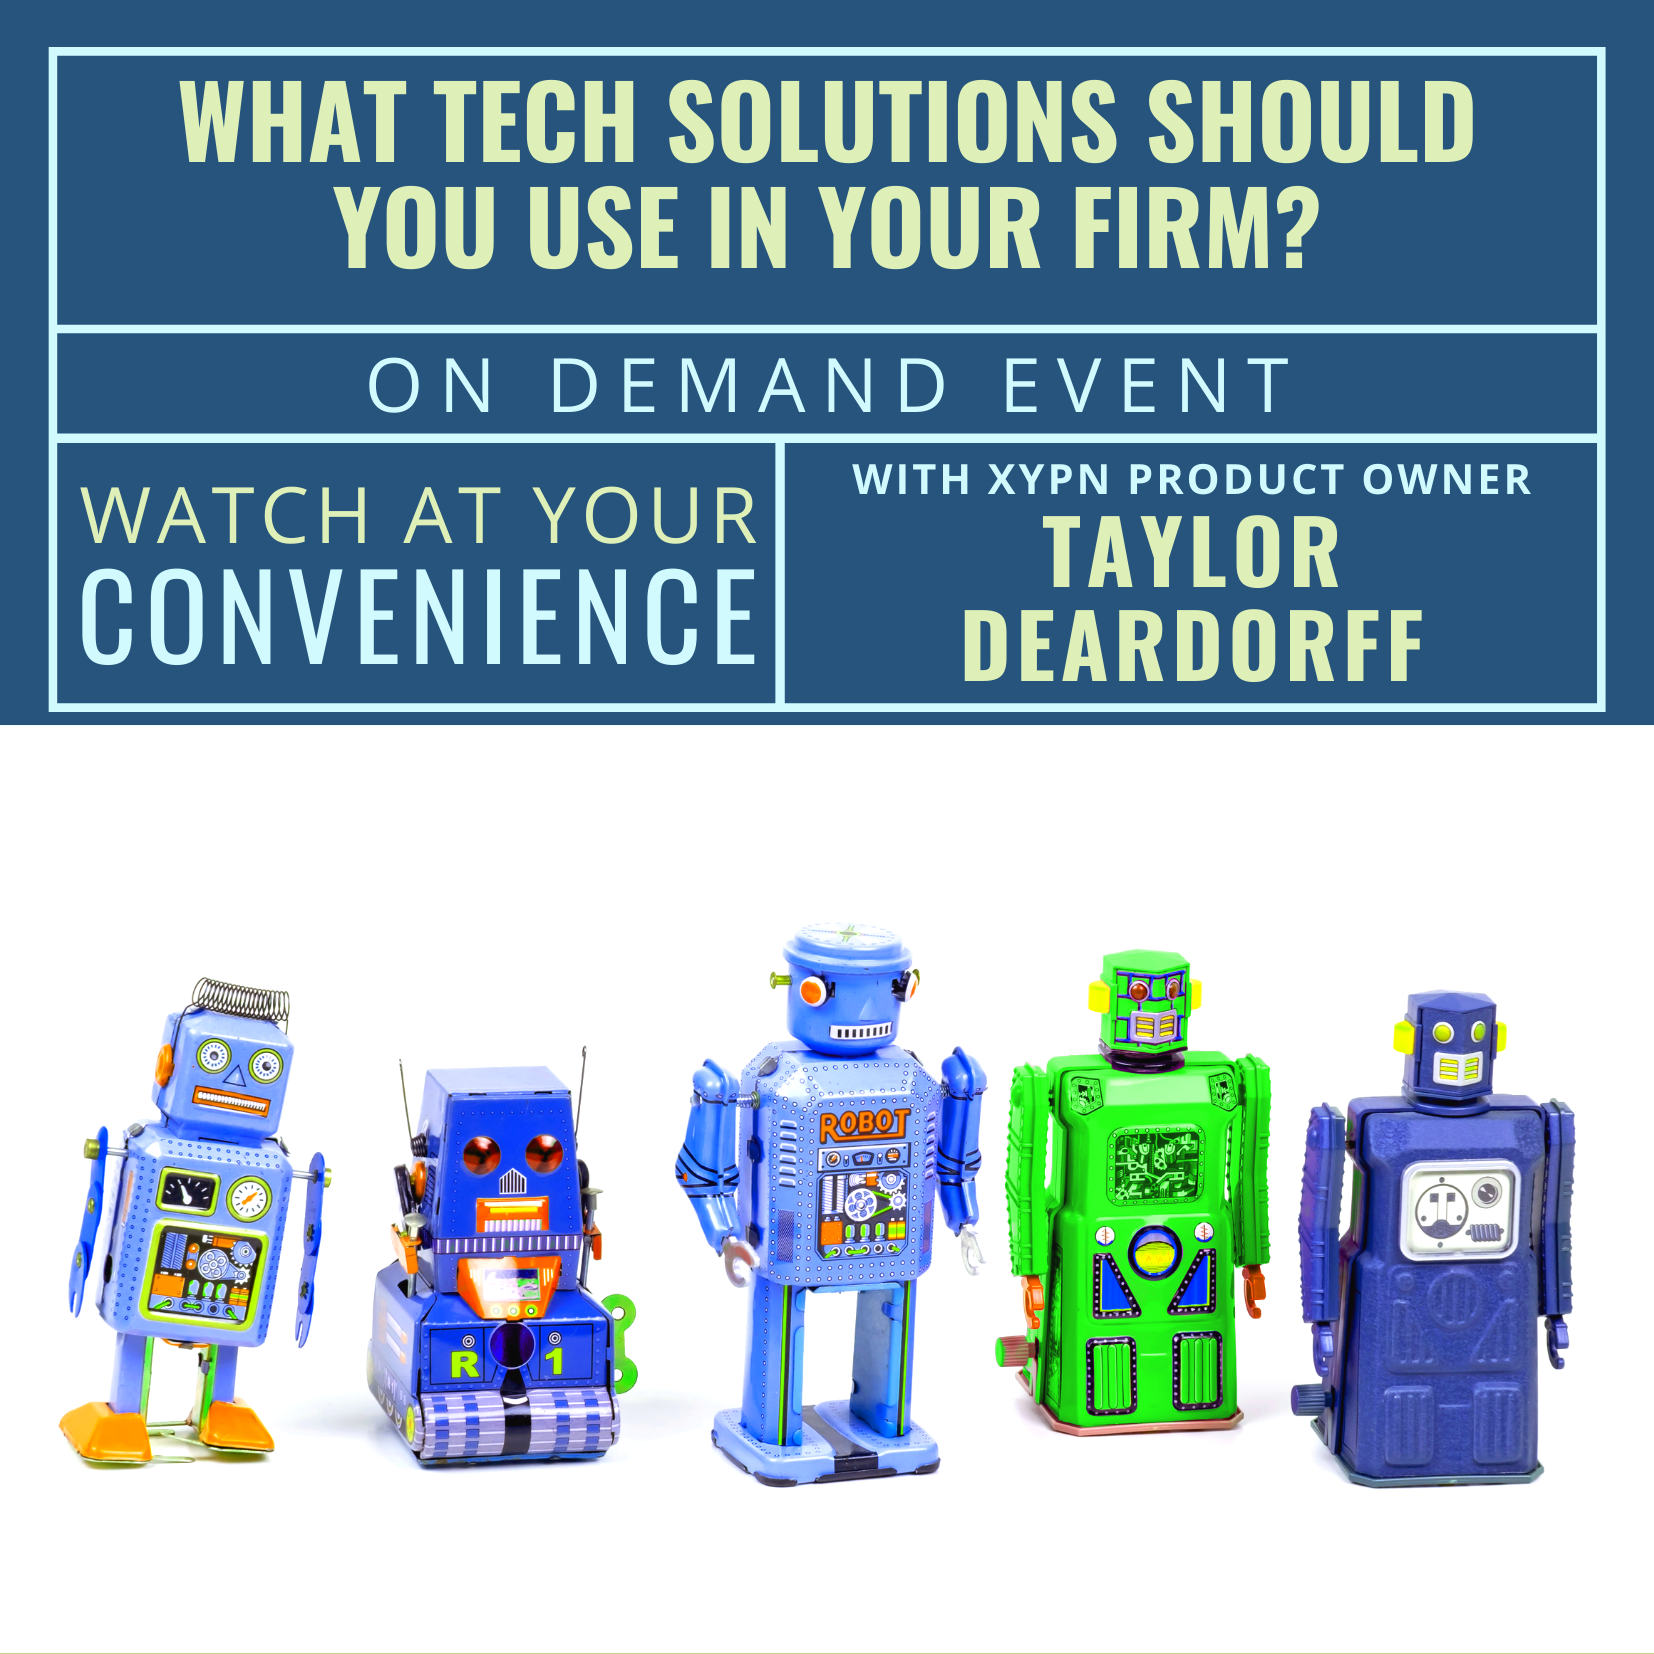 What Tech Solutions Should You Use in Your Firm?